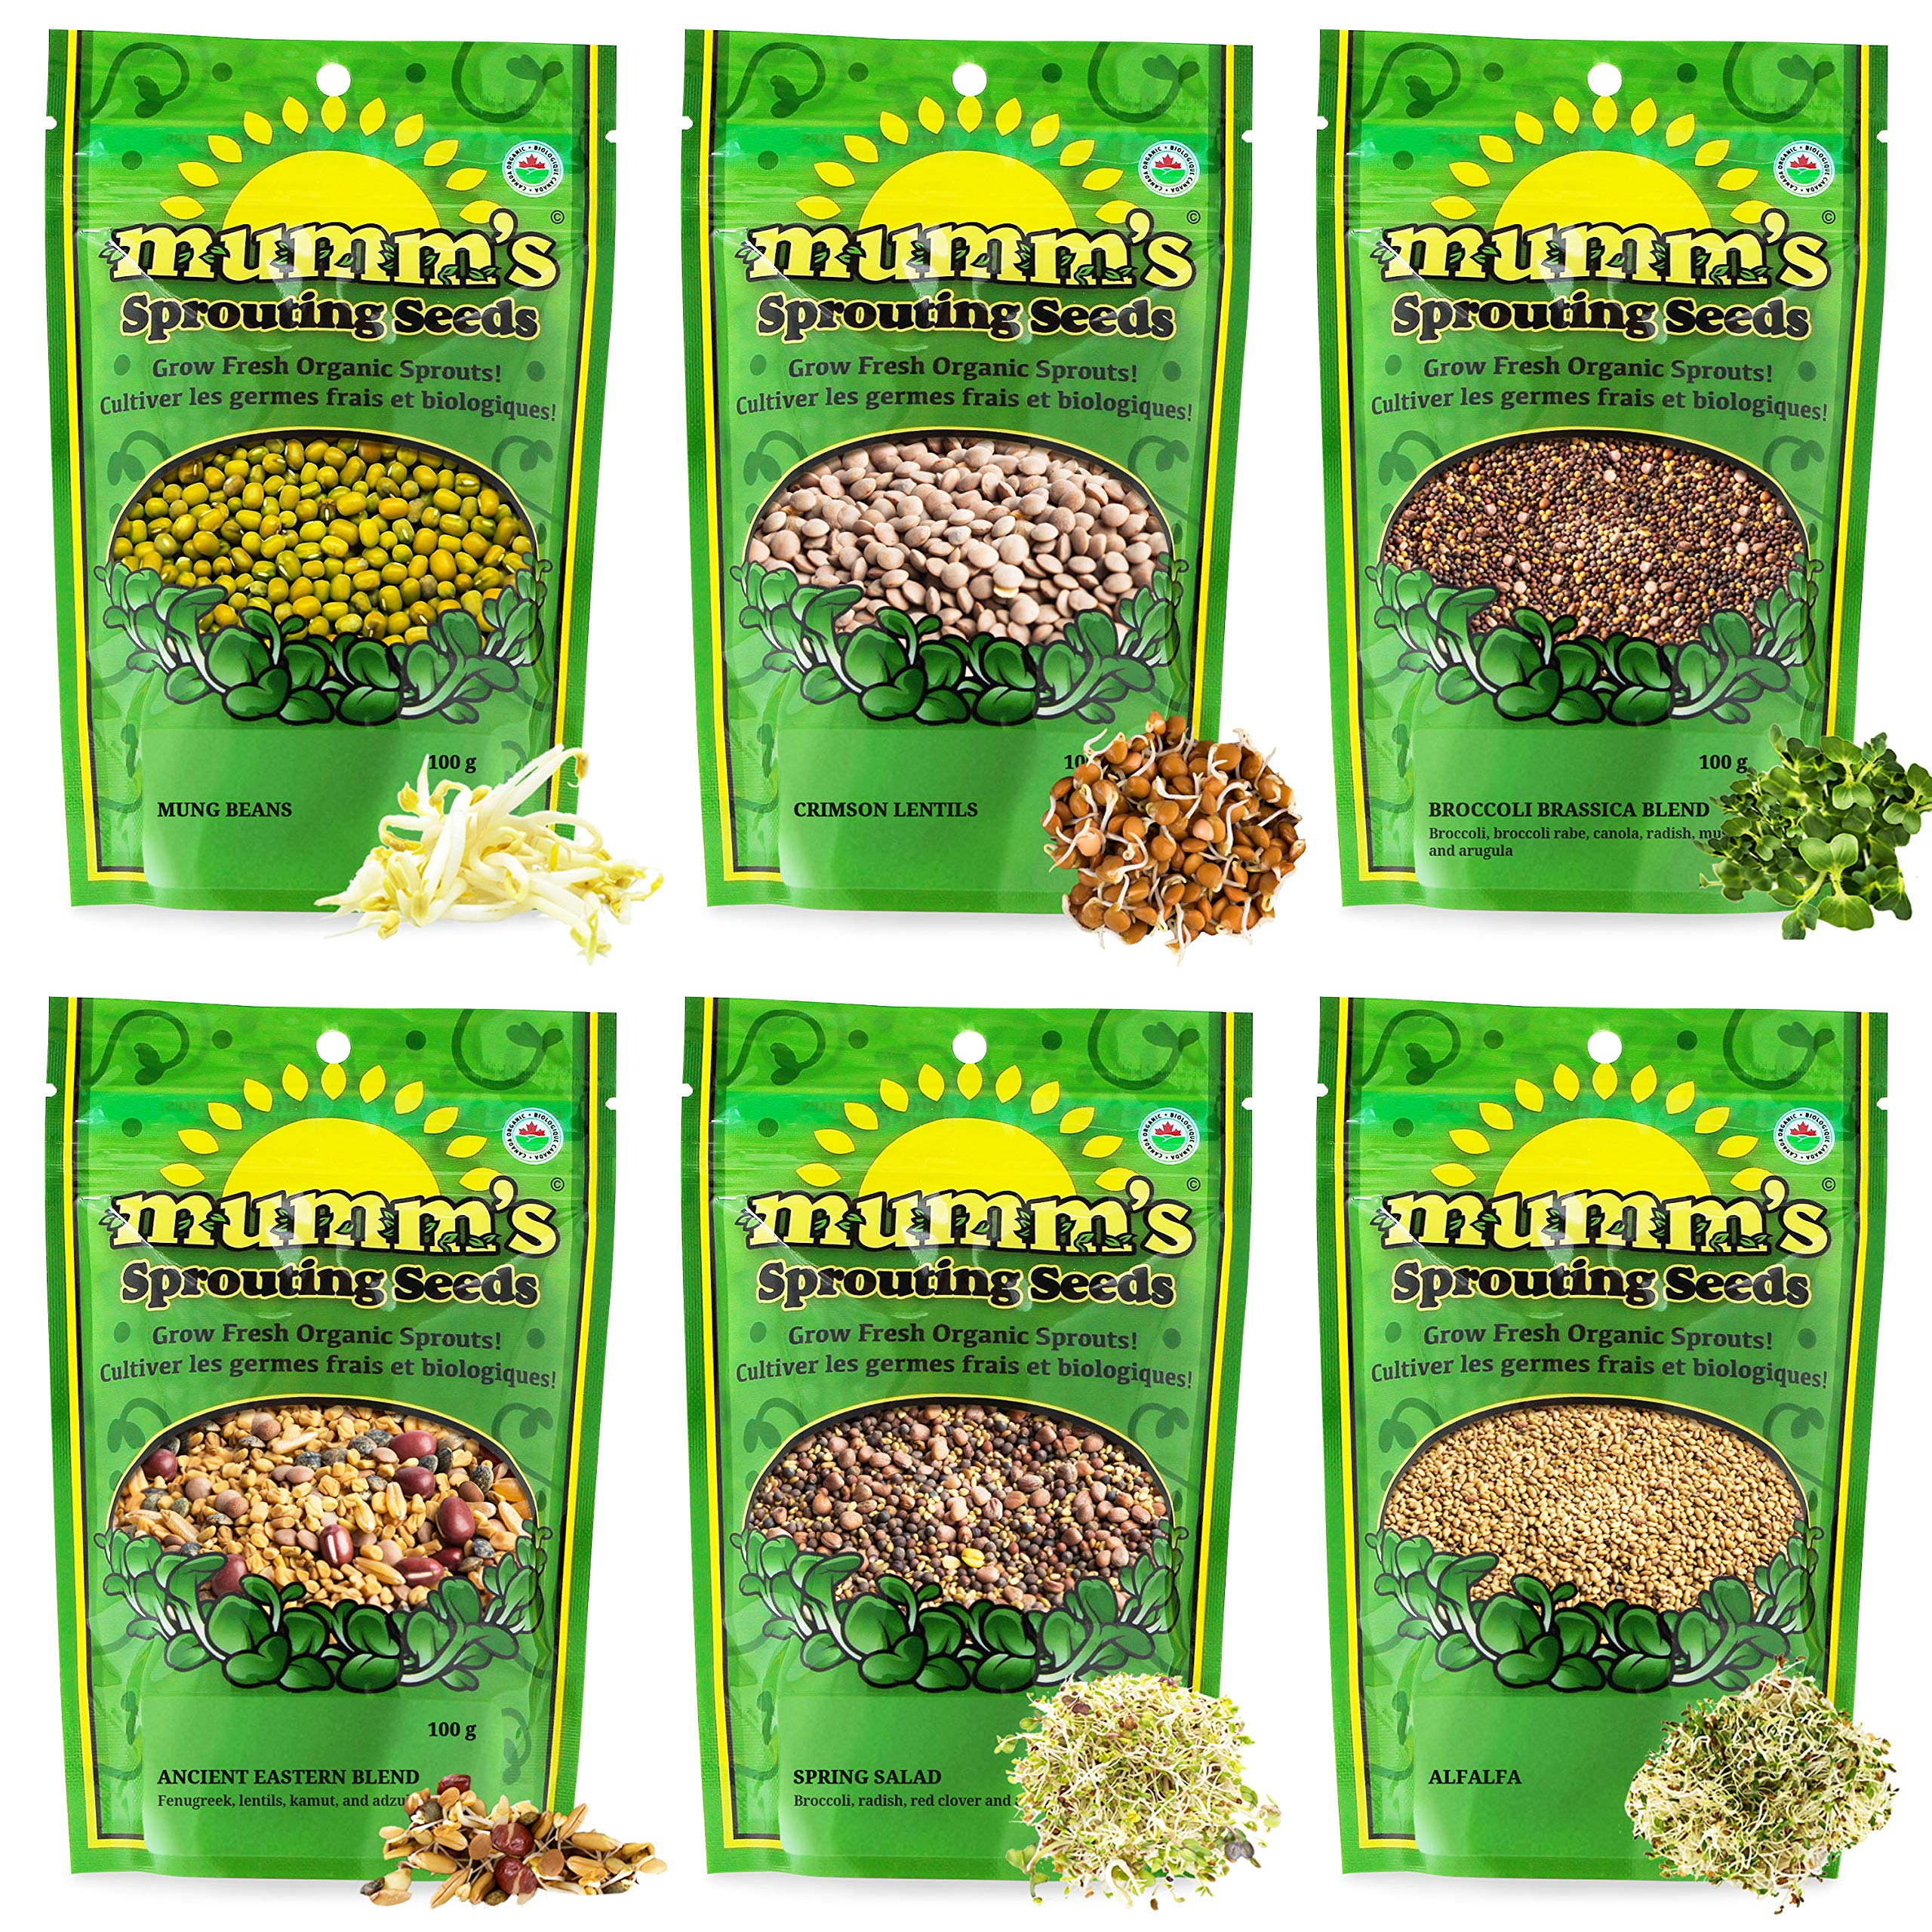 Mumm's Sprouting Seeds - Starter Sample Pack - 625 GR - Organic Sprout Seed Kit - Broccoli, Radish, Alfalfa, Mung Bean